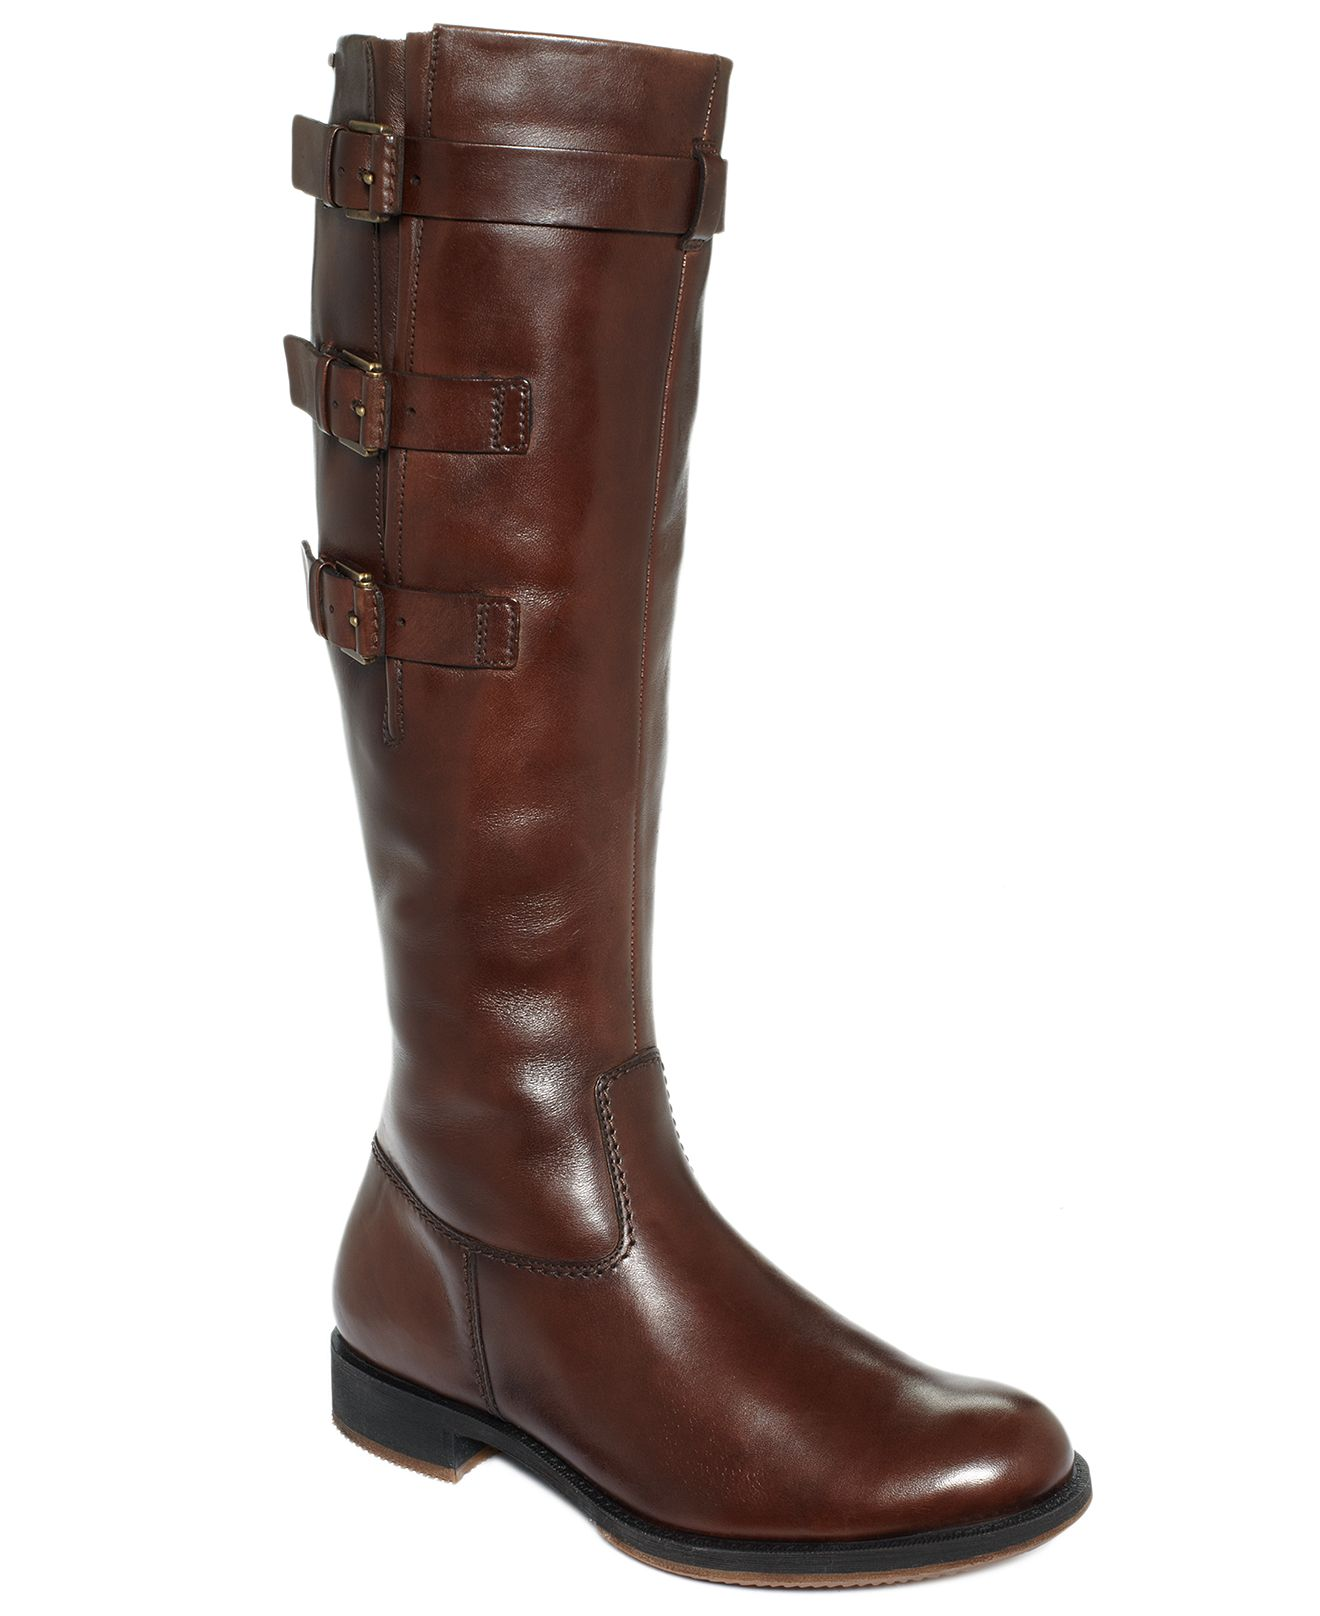 womens dress boots macys with excellent minimalist in